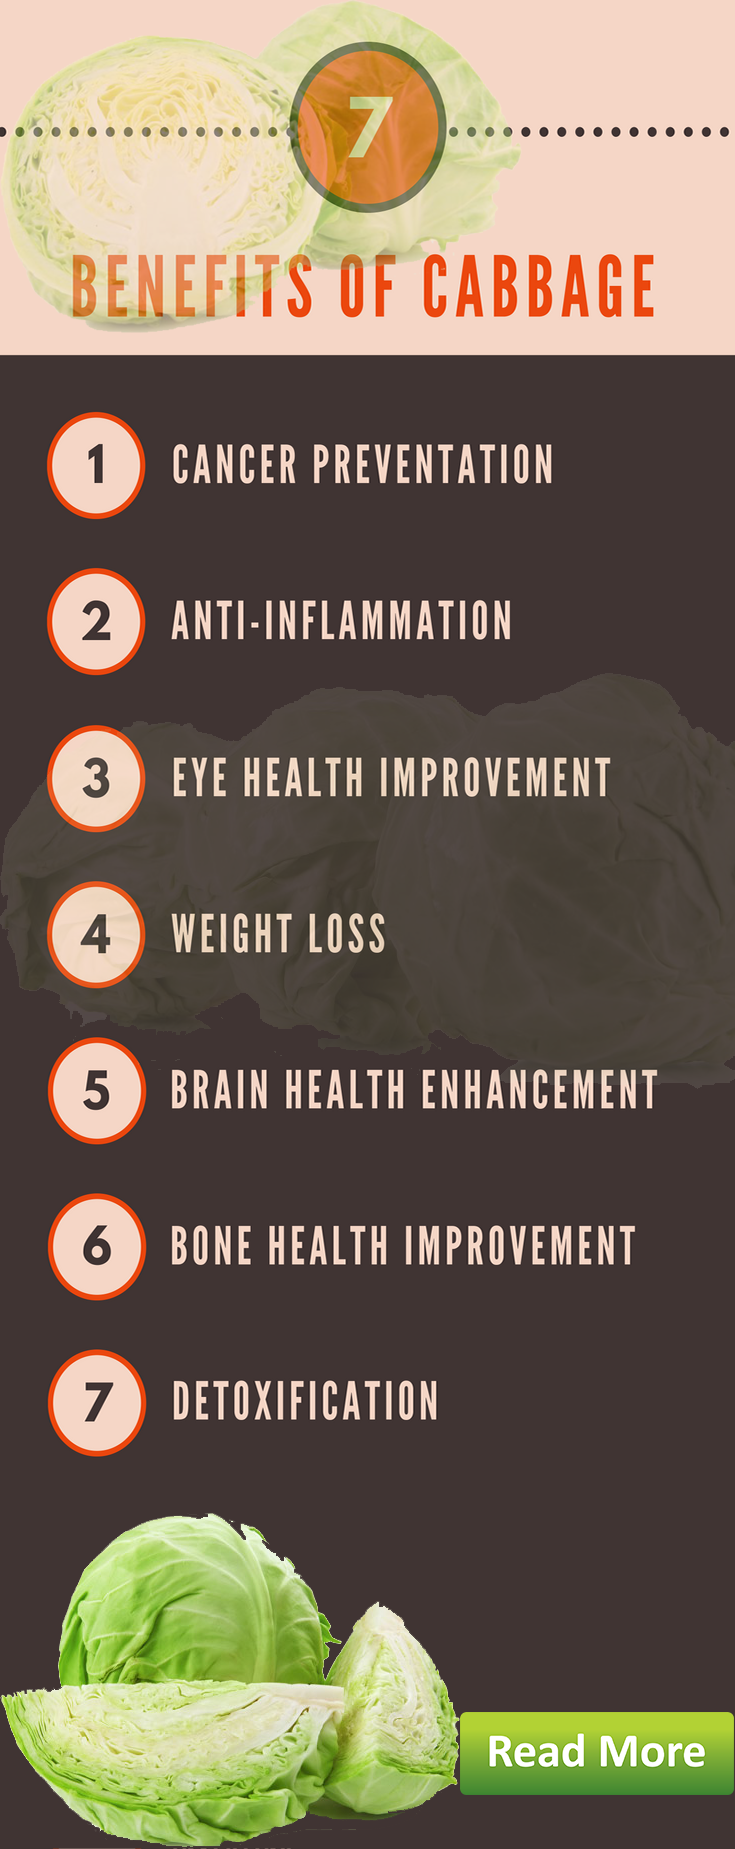 Nutrition Facts and Health Benefits advise